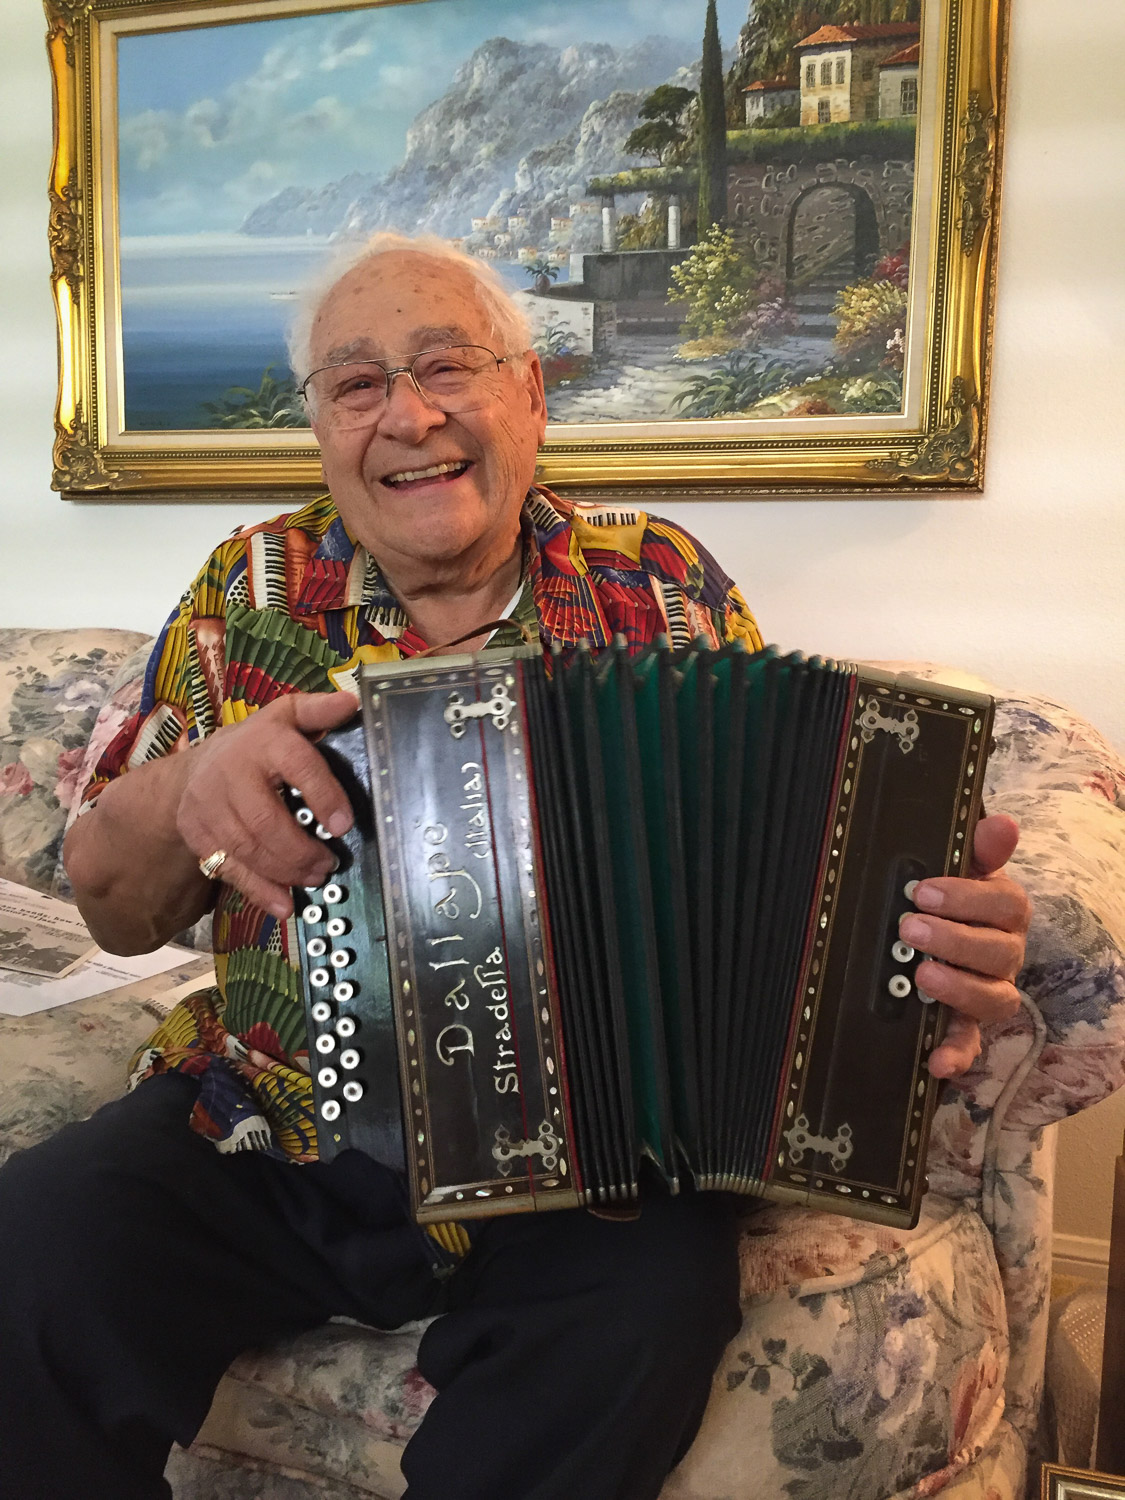 Norm Panto plays his father's button accordion.